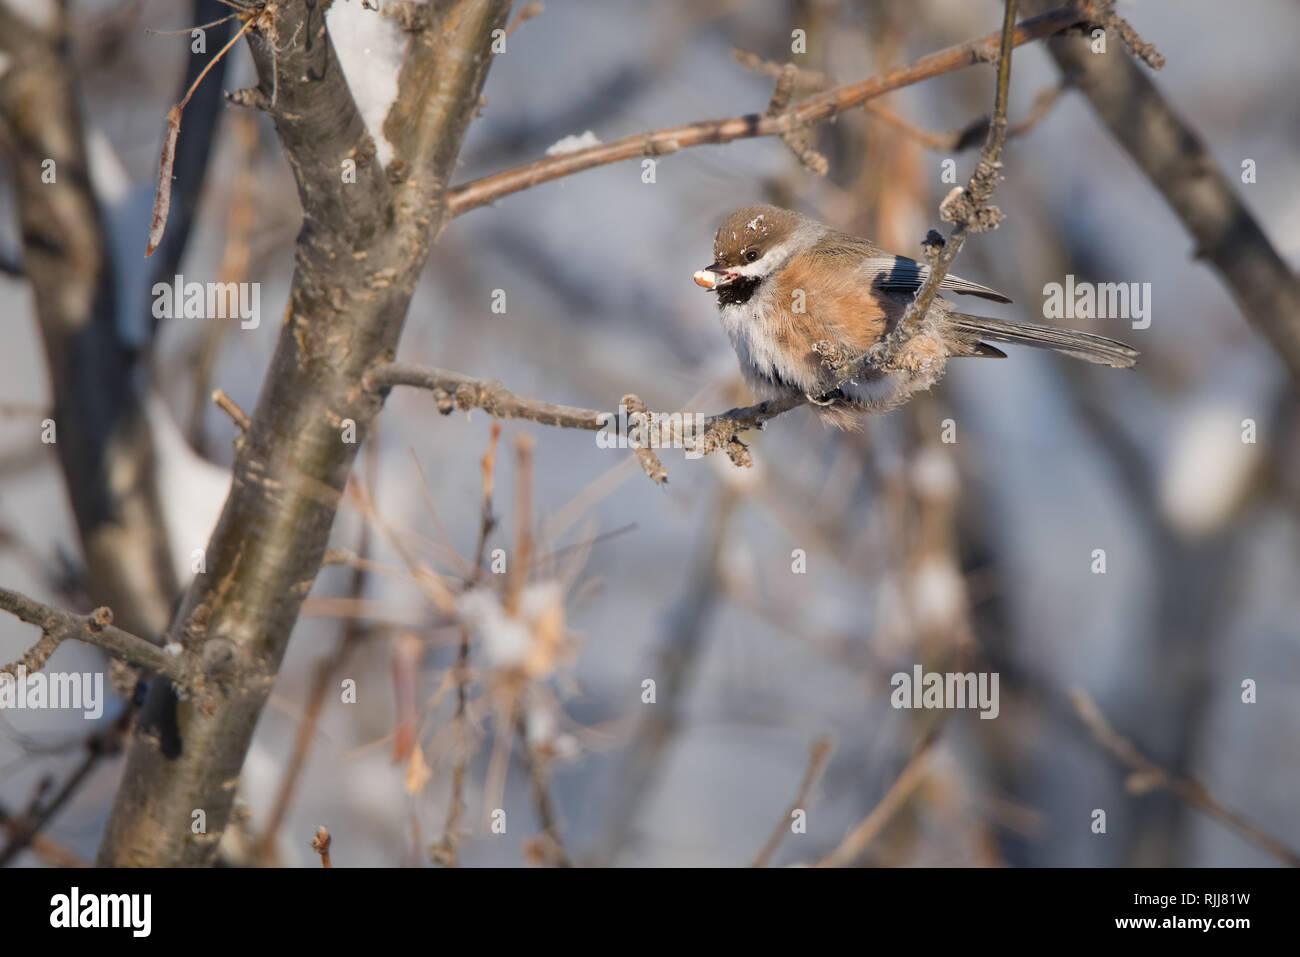 A Boreal Chickadee perched with a tasty snack from a bird feeder on a chilly morning in Yellowknife, Northwest Territories, Canada. Stock Photo